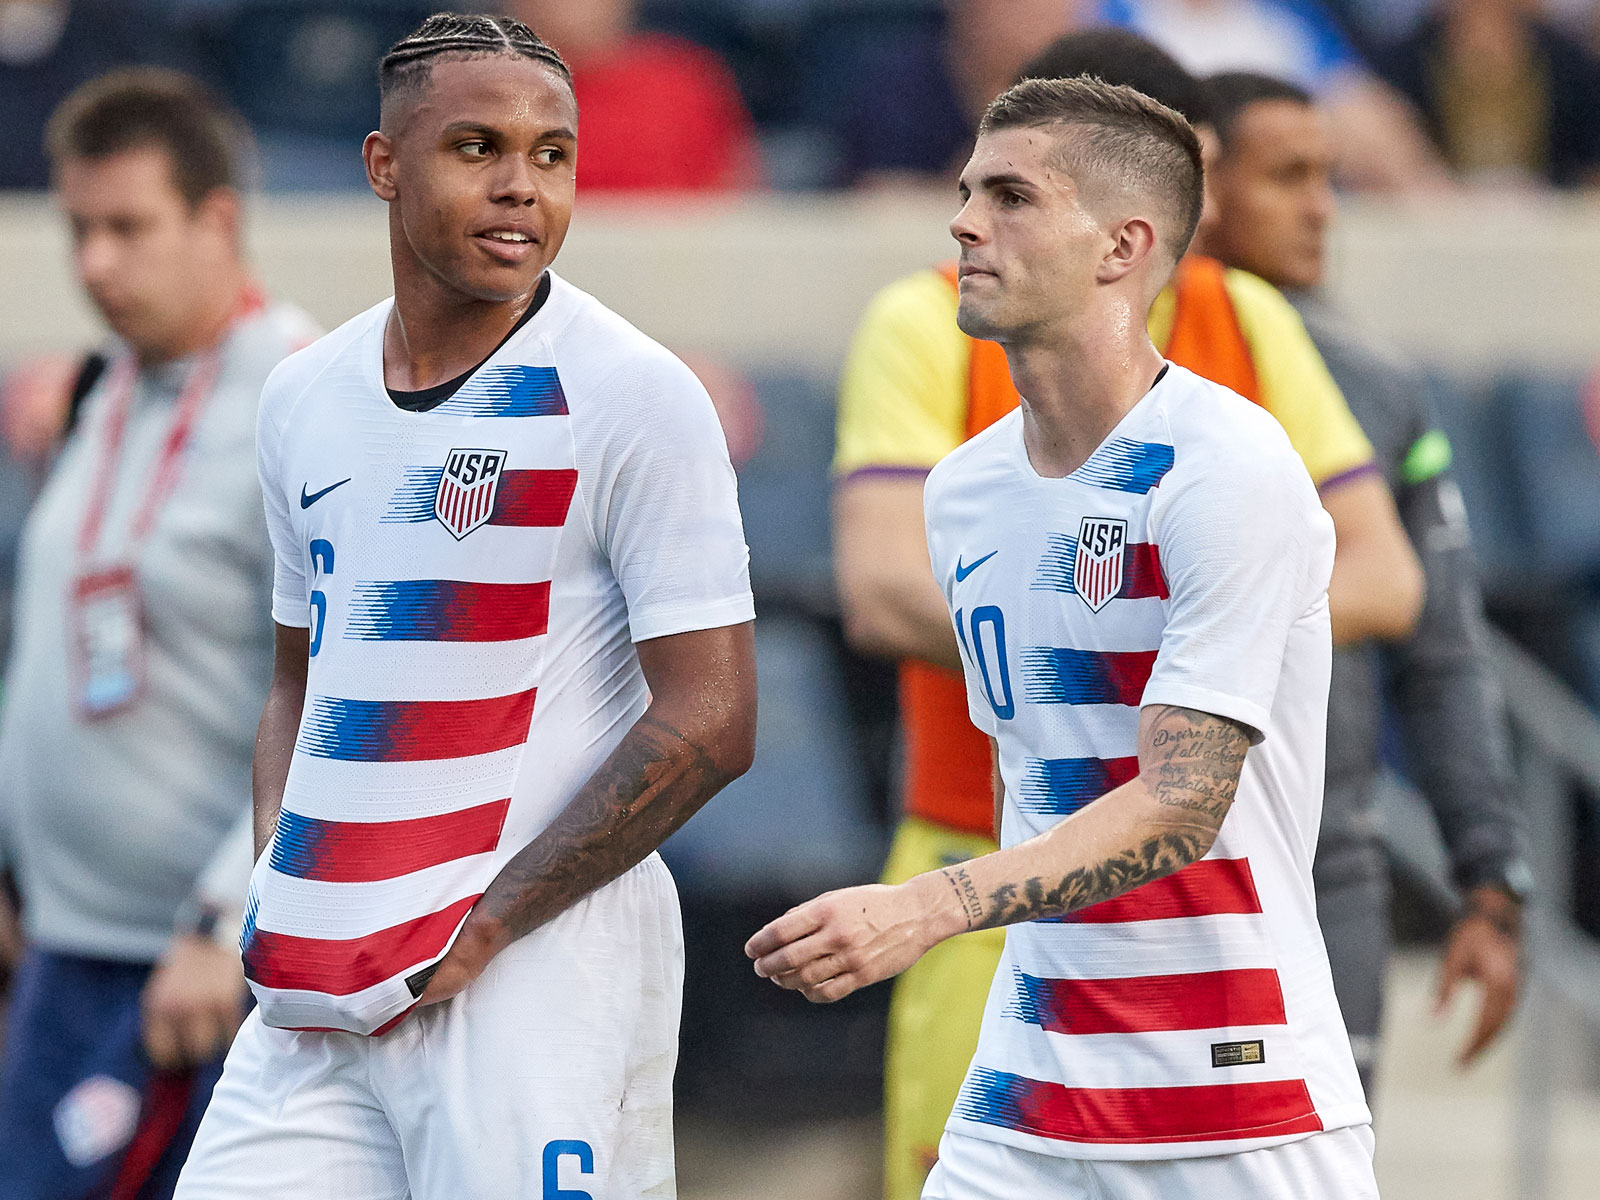 Weston McKennie and Christian Pulisic could form a strong midfield partnership with the USMNT